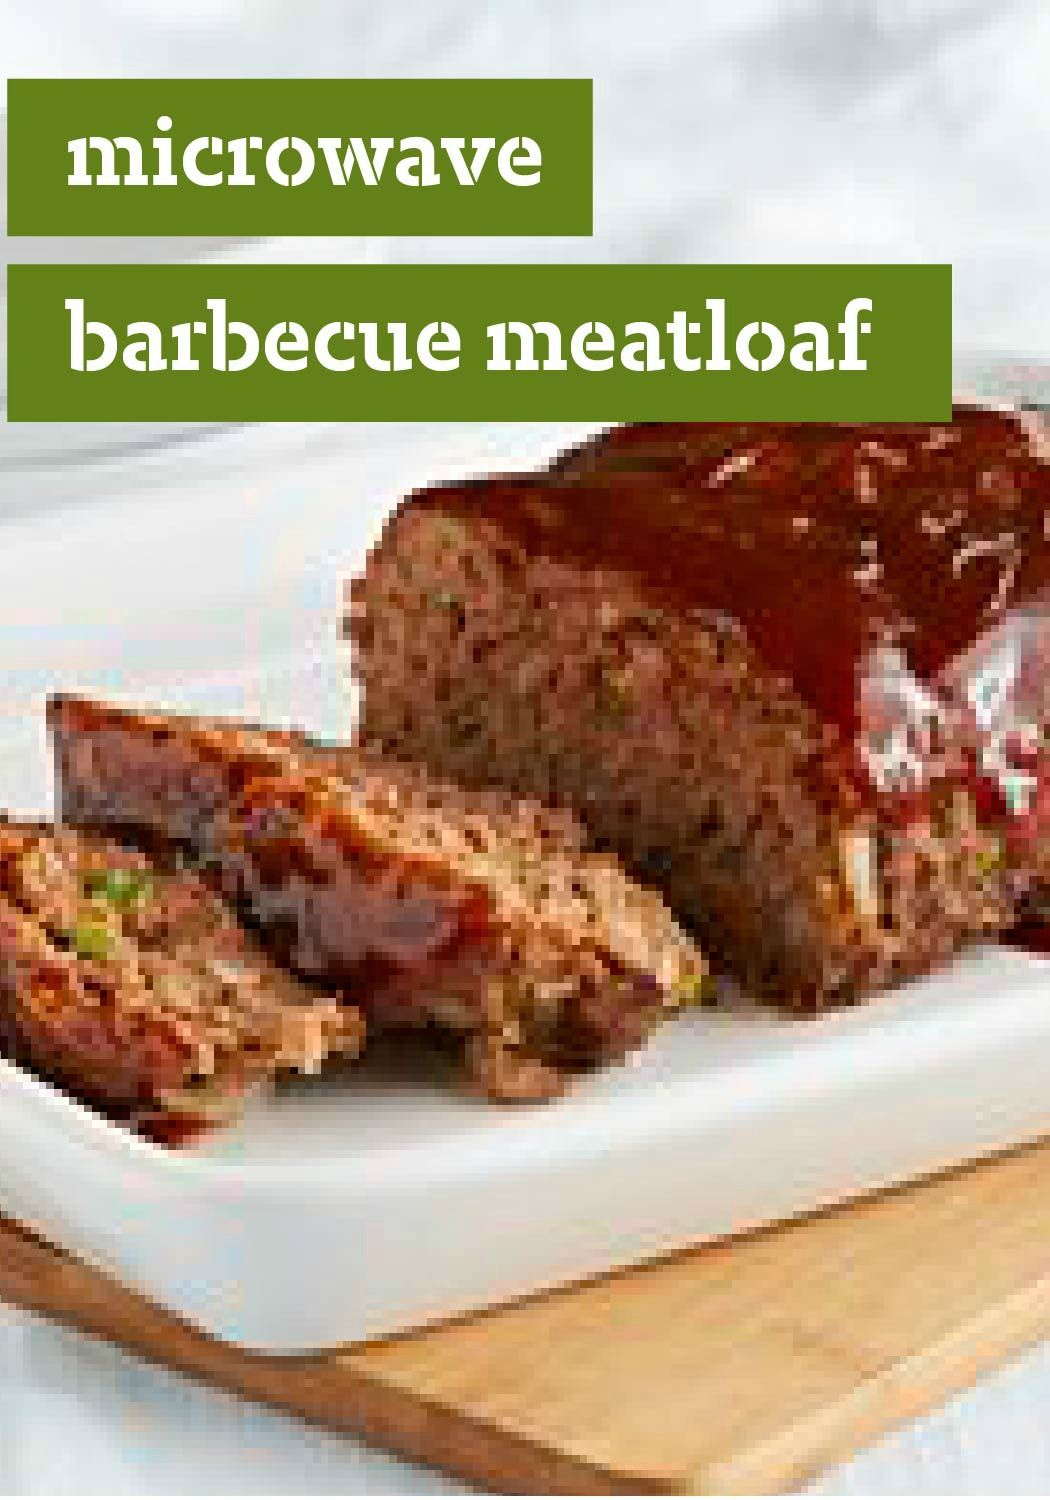 Barbecue Microwave Meatloaf Recipe